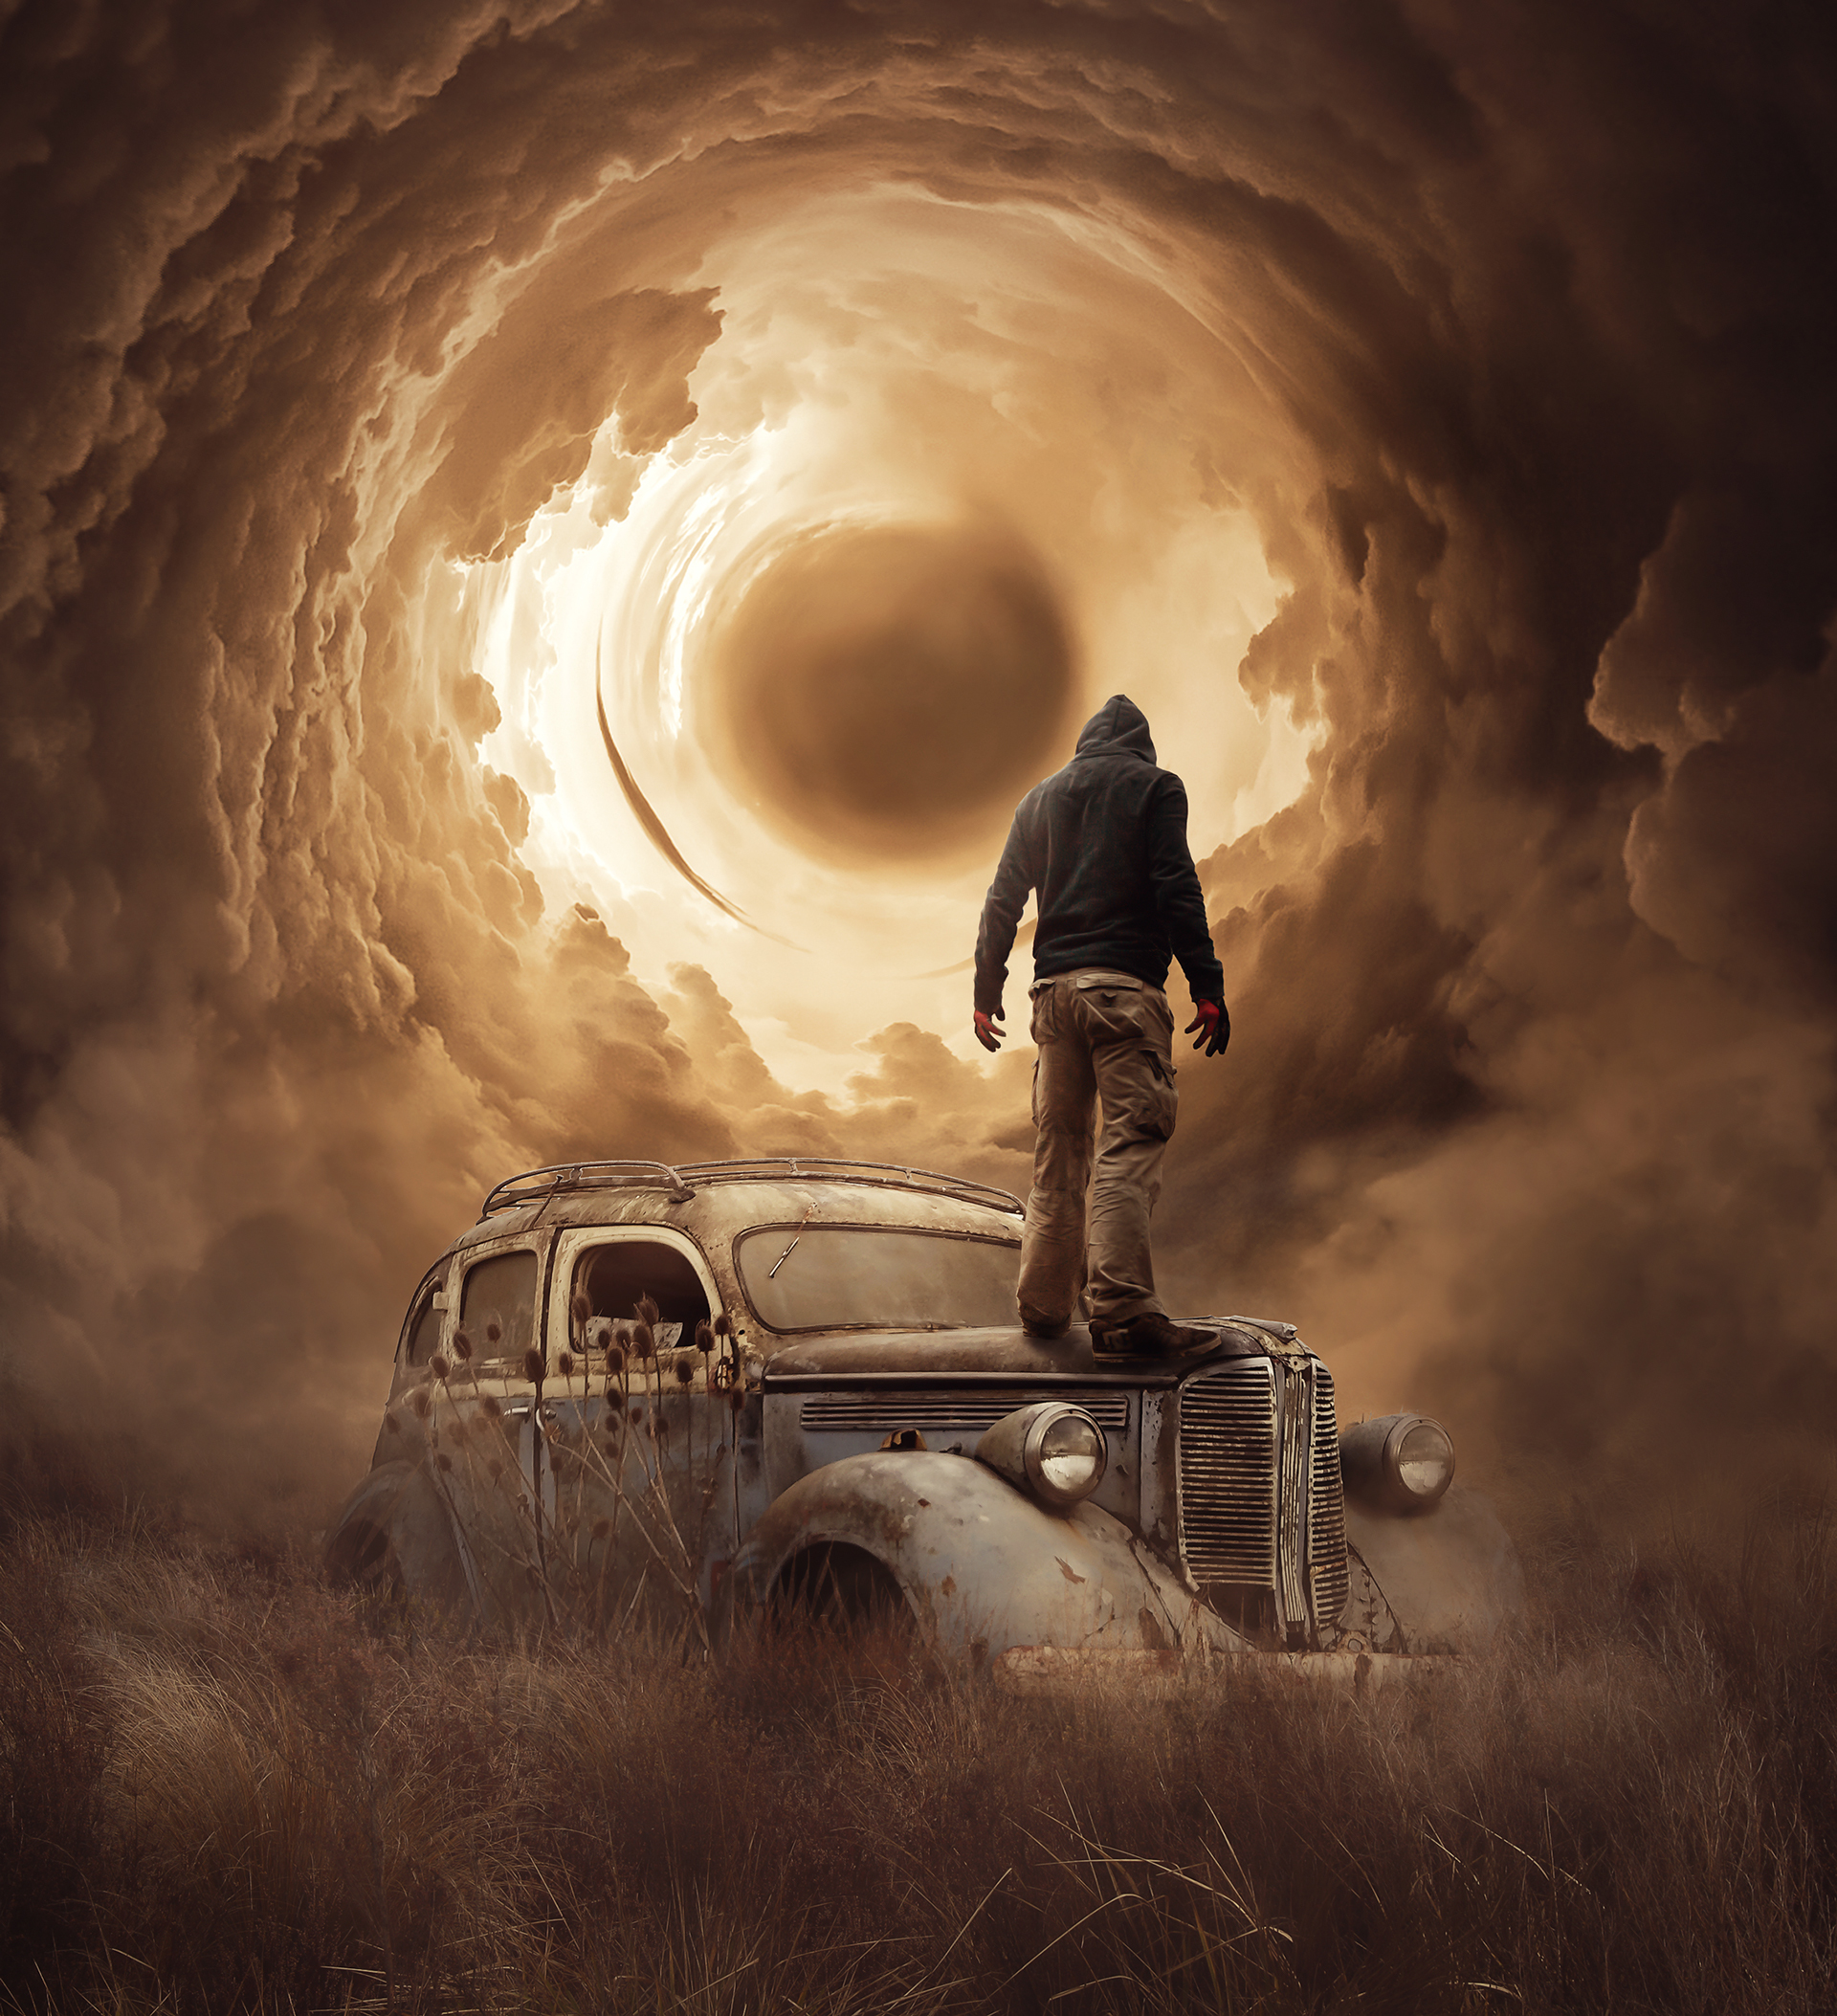 space-inspired-photoshop-manipulations-dust-portal